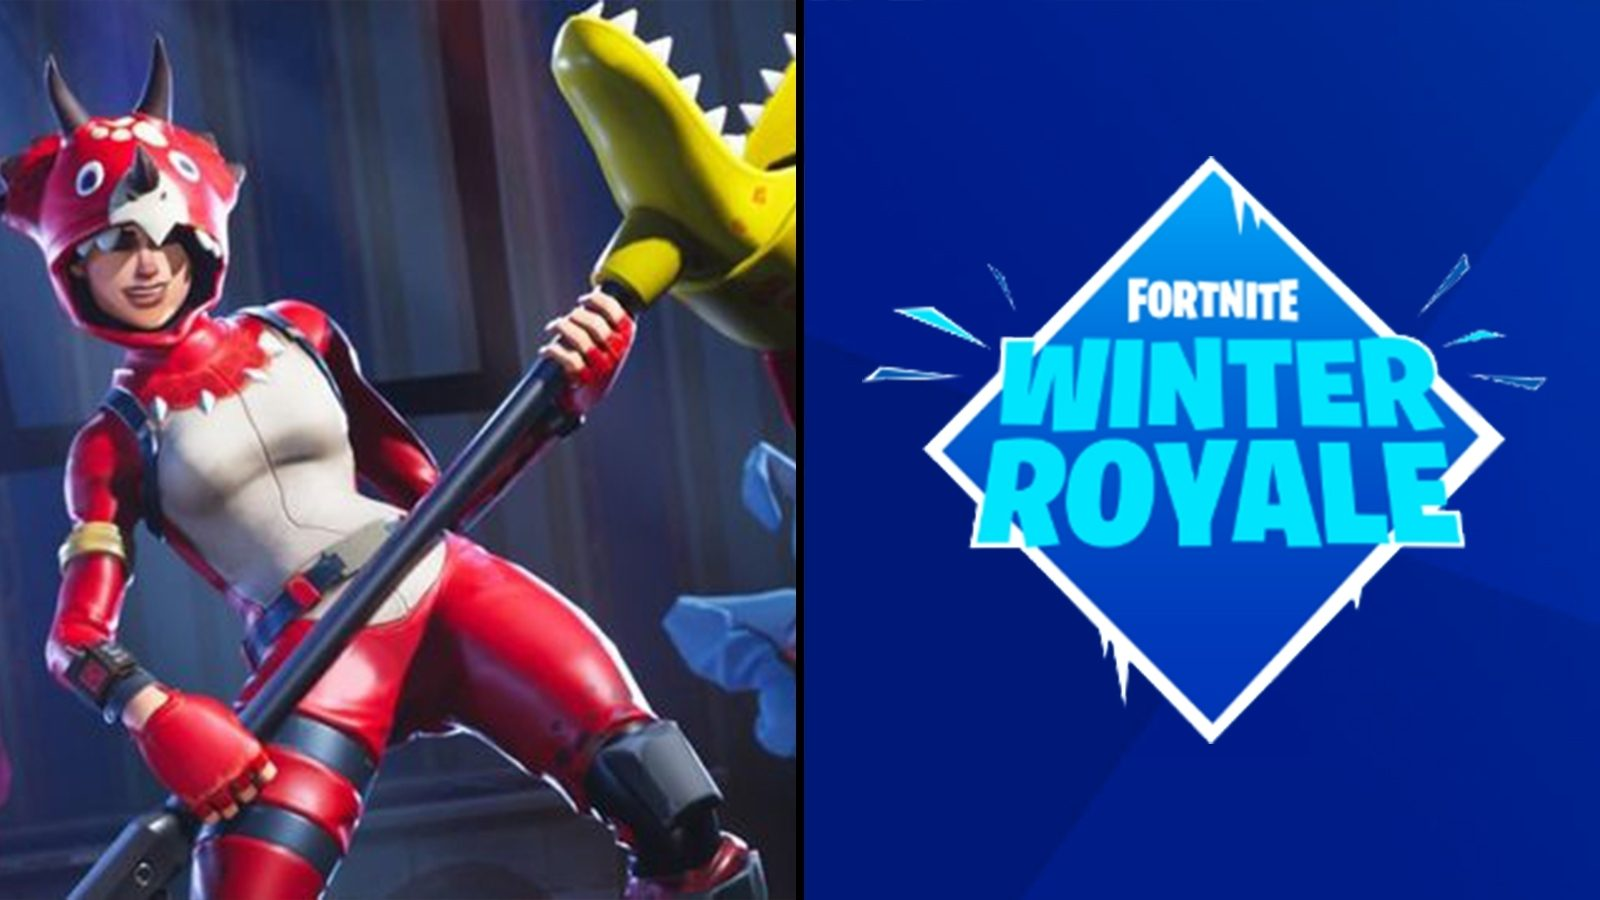 Fortnite's Winter Royale open competition has been less than fair.